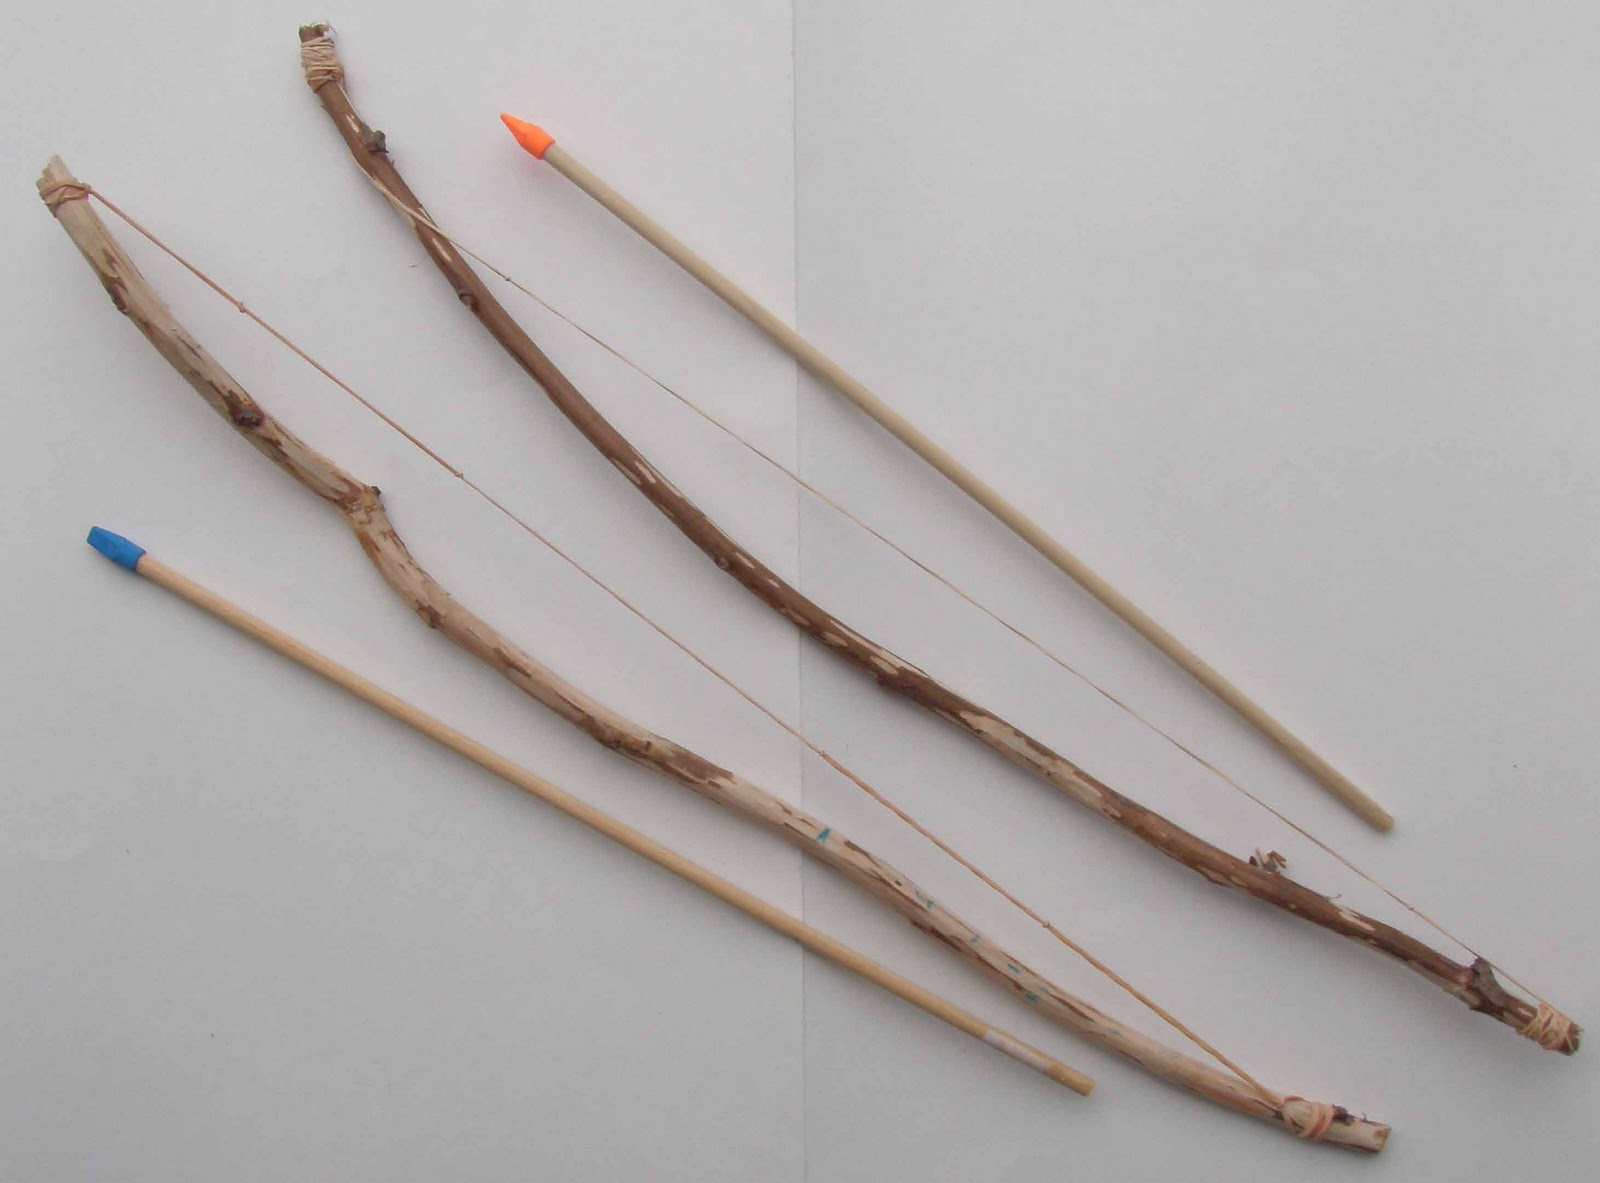 Crack of dawn crafts january 2011 - How to make a homemade bow and arrow out of wood ...